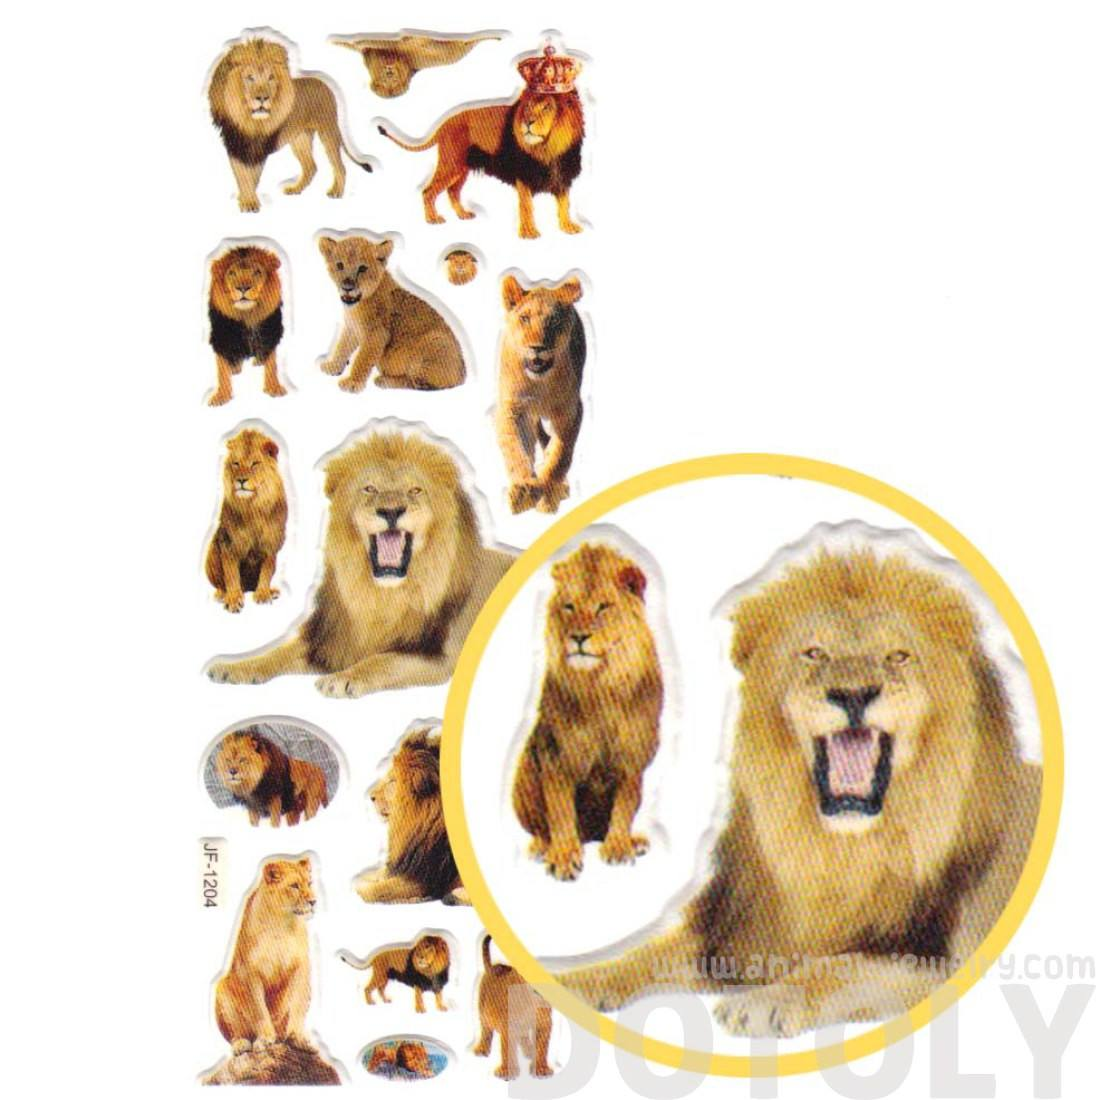 Realistic Lions and Lion Cubs Shaped Animal Themed Photo Stickers